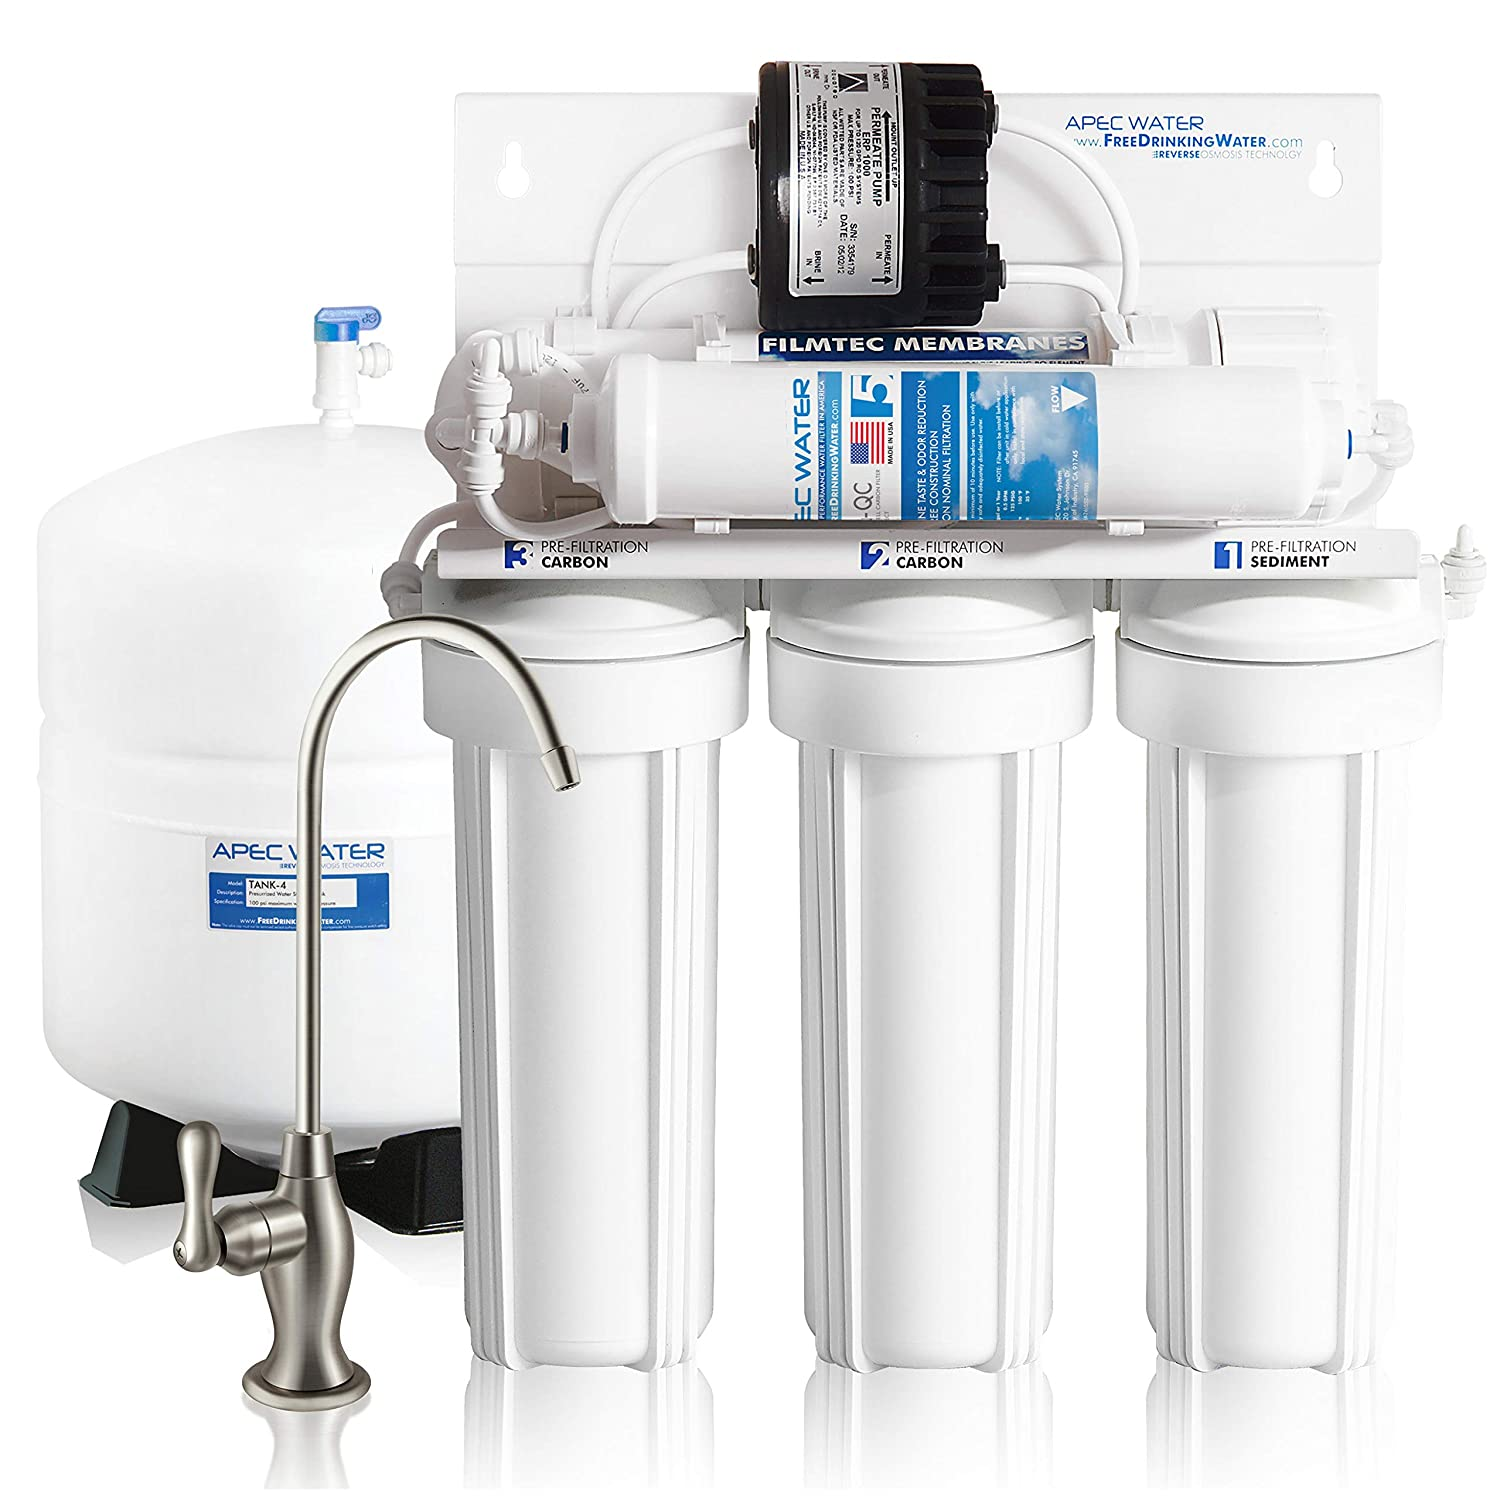 APEC Water Systems ULTIMATE RO-PERM Boosted Performance with Permeate Pump Ultra Safe Reverse Osmosis Drinking Water Filter System, for for Low Pressure Homes